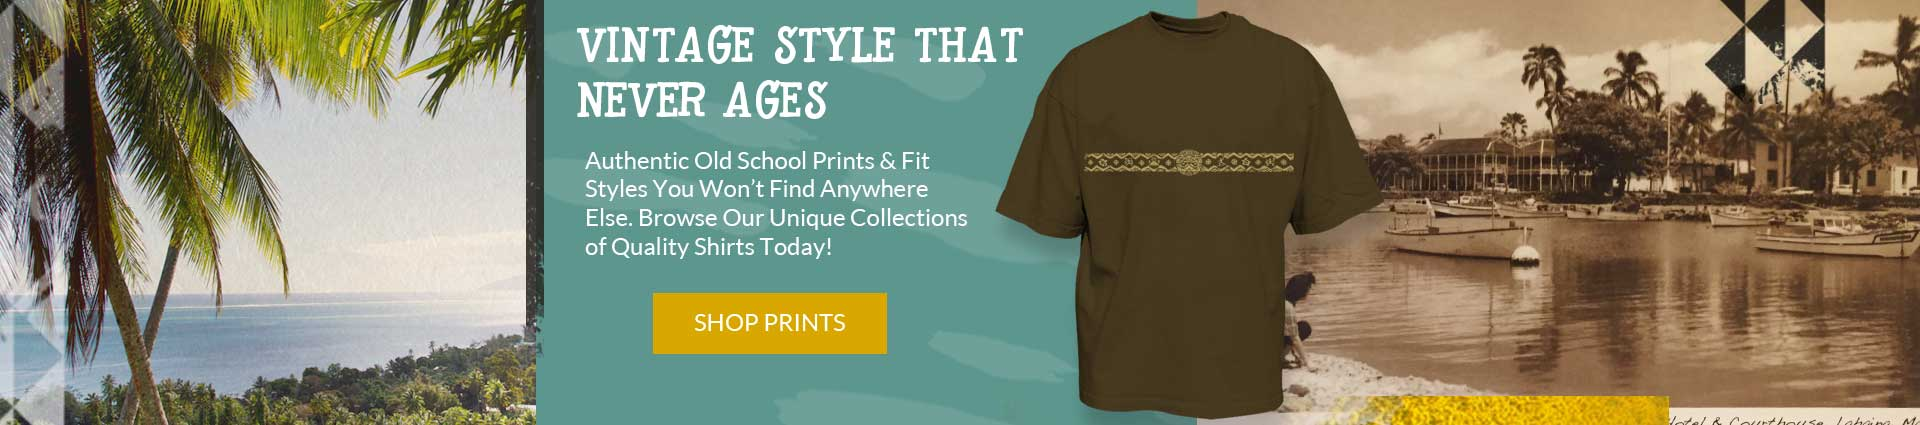 Vintage style that never ages. Browse our unique collection of quality shirts.